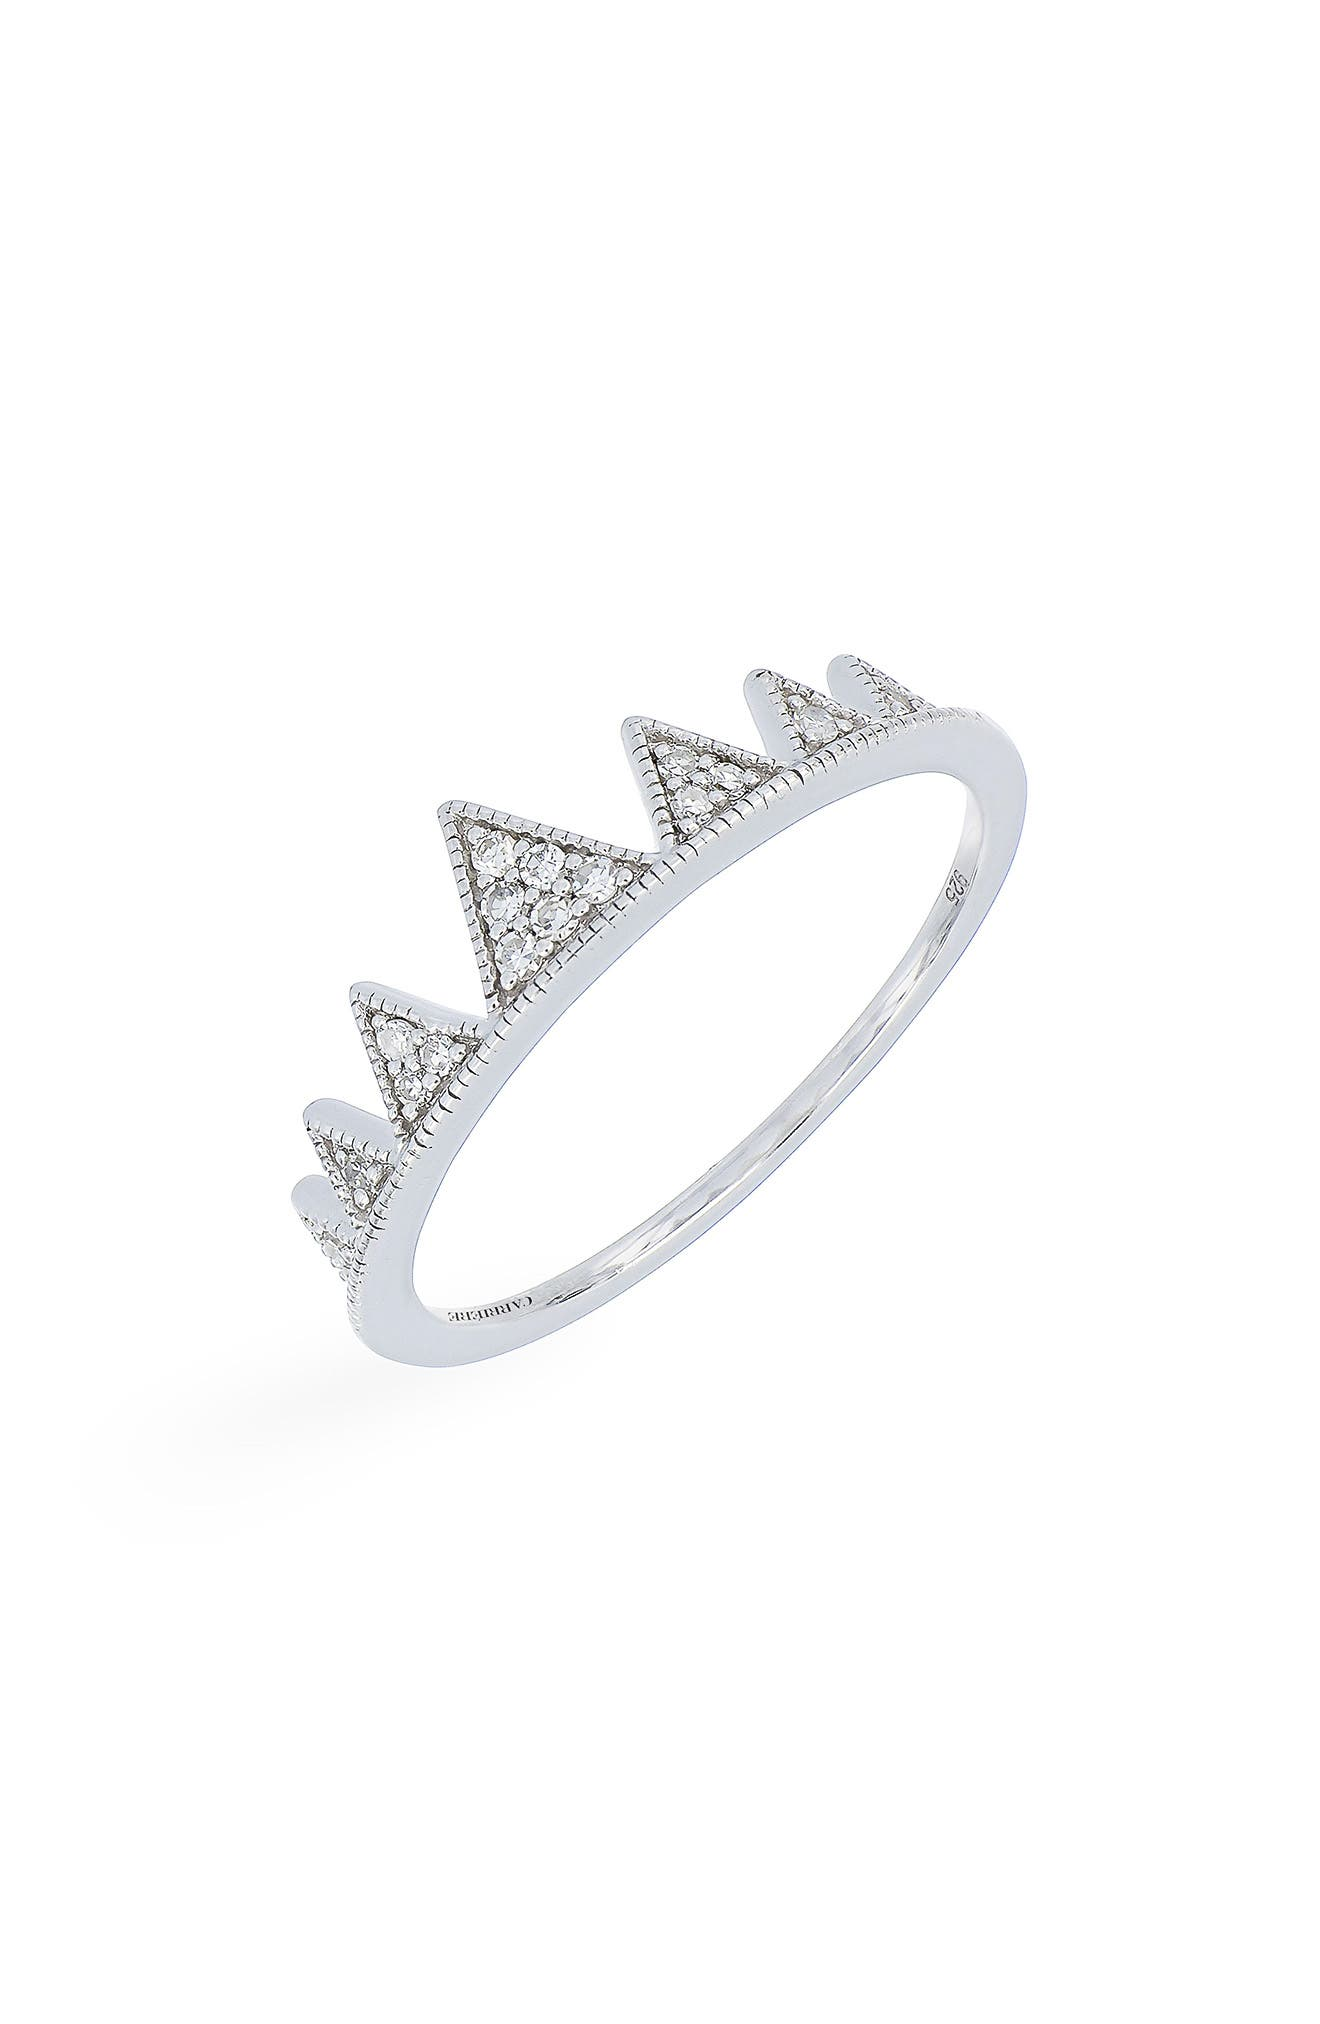 Carrière Diamond Crown Ring,                         Main,                         color, Sterling Silver/ Diamond